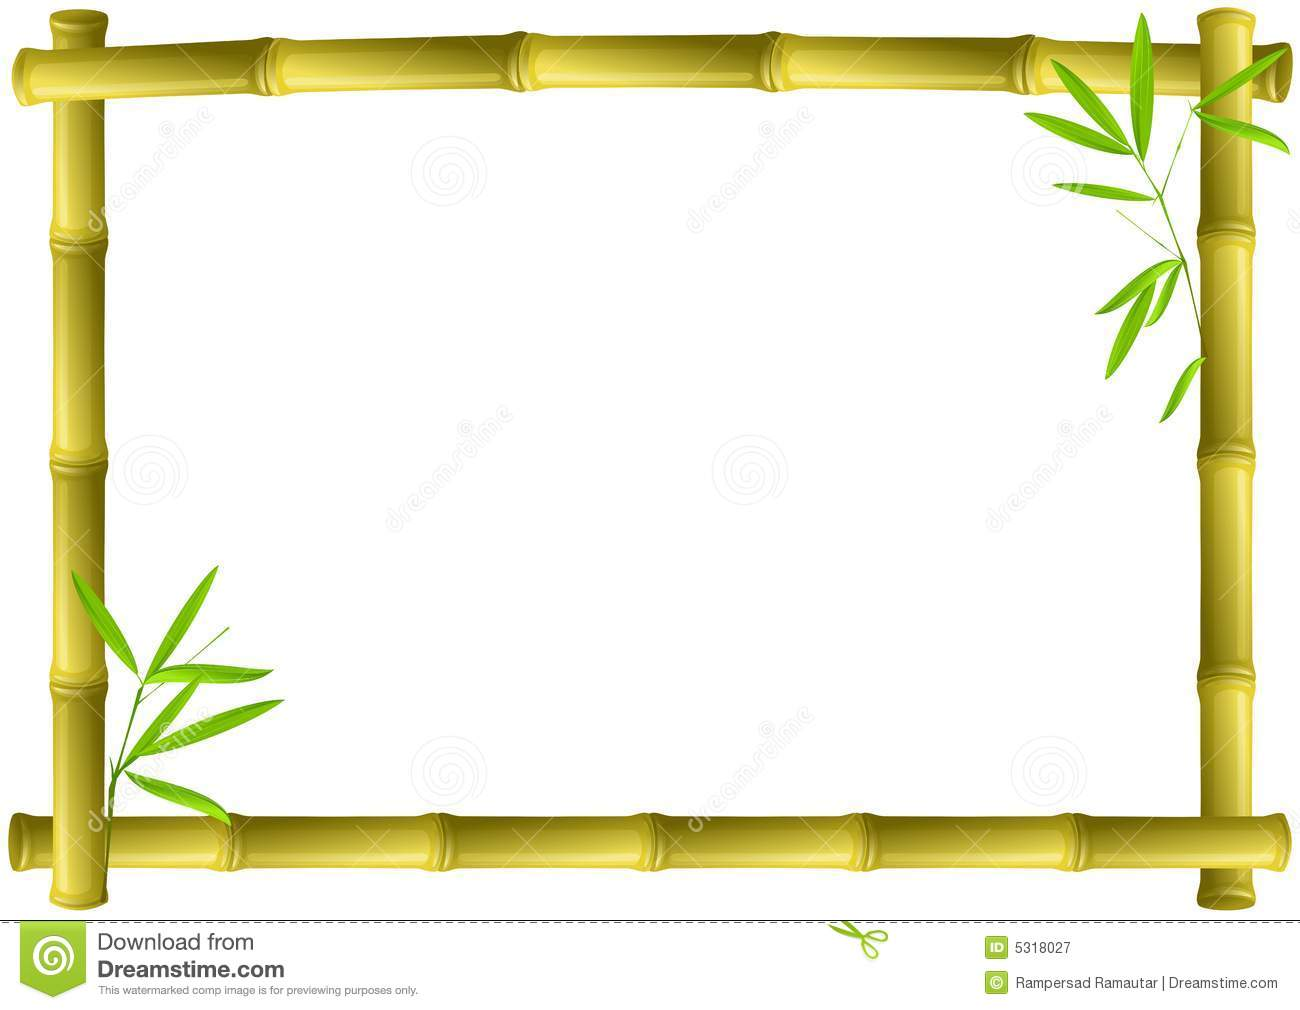 Bamboo Frame Stock Vector Illustration Of Wood Border